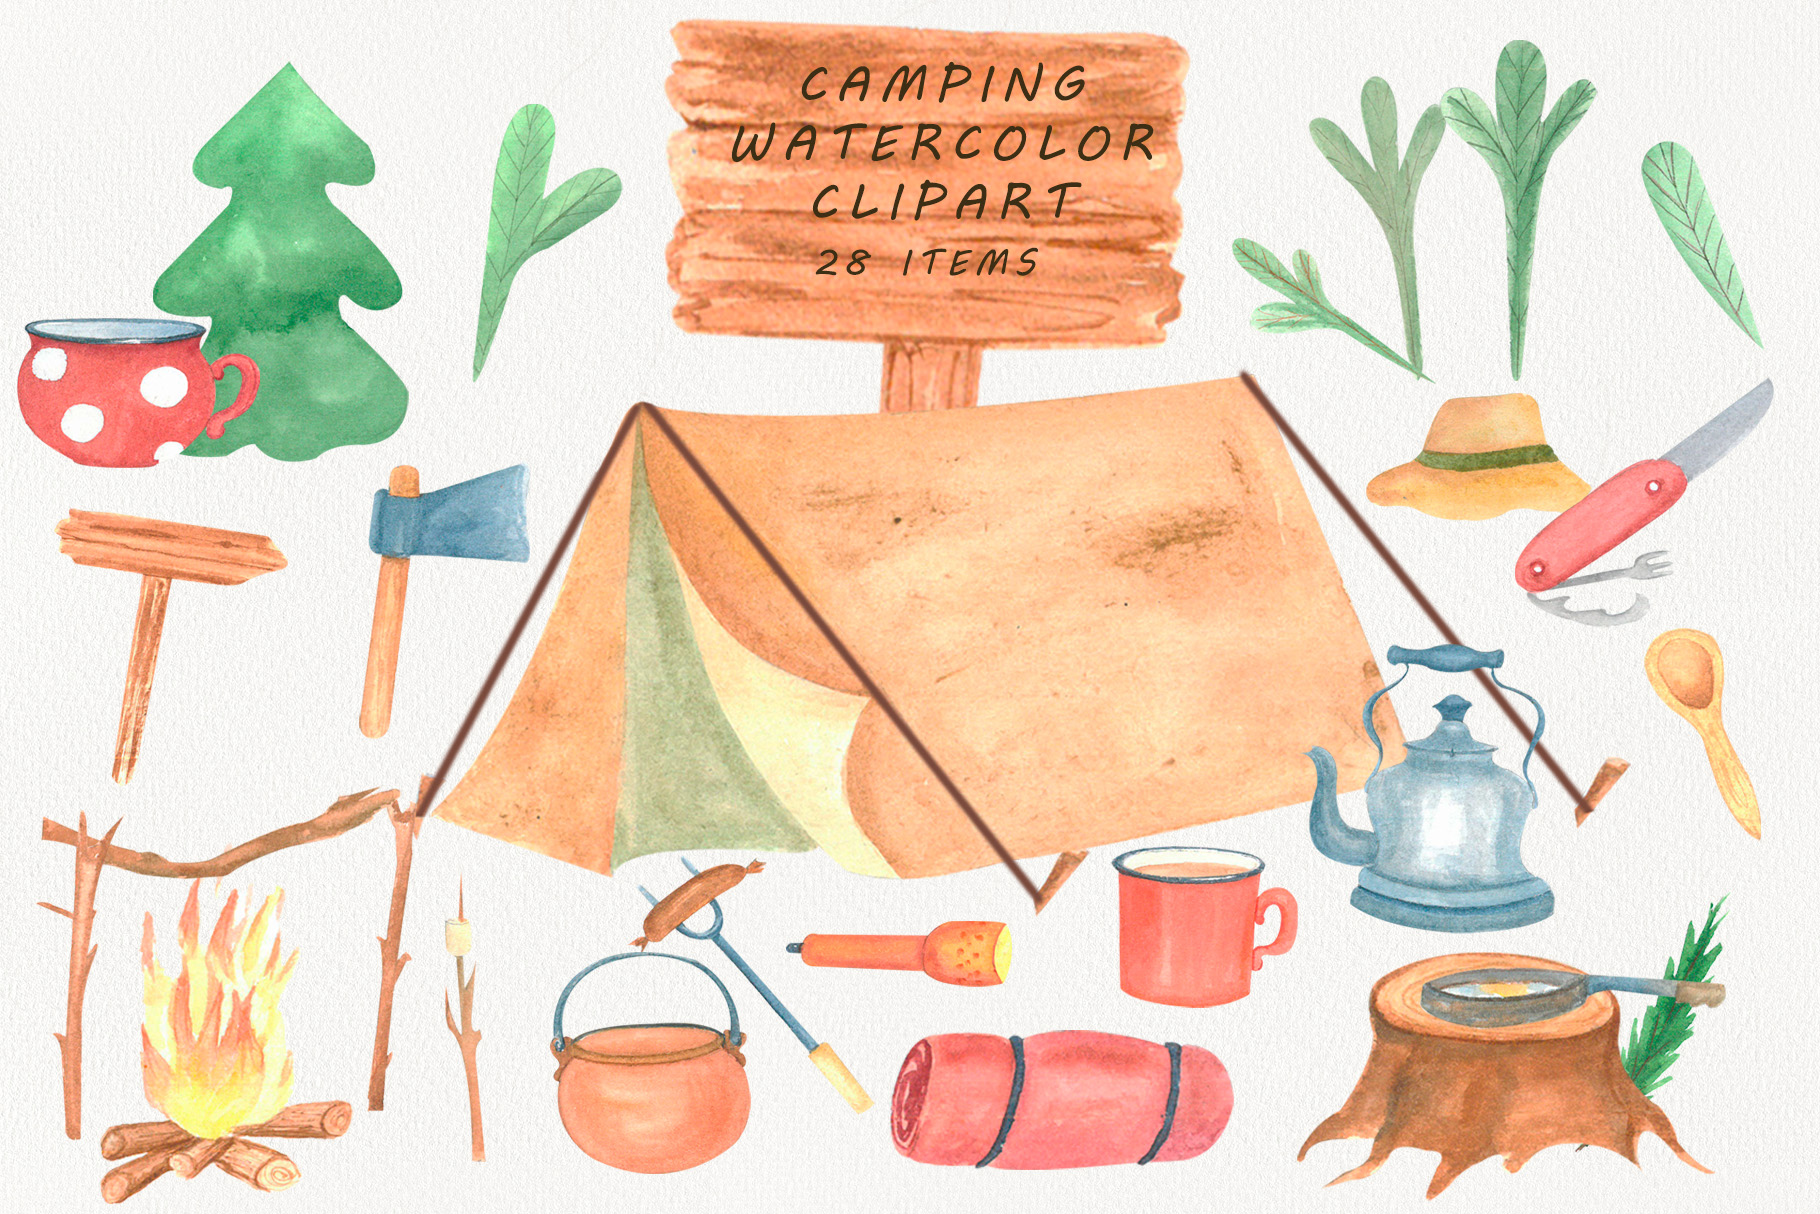 Camping Clipart watercolor example image 1